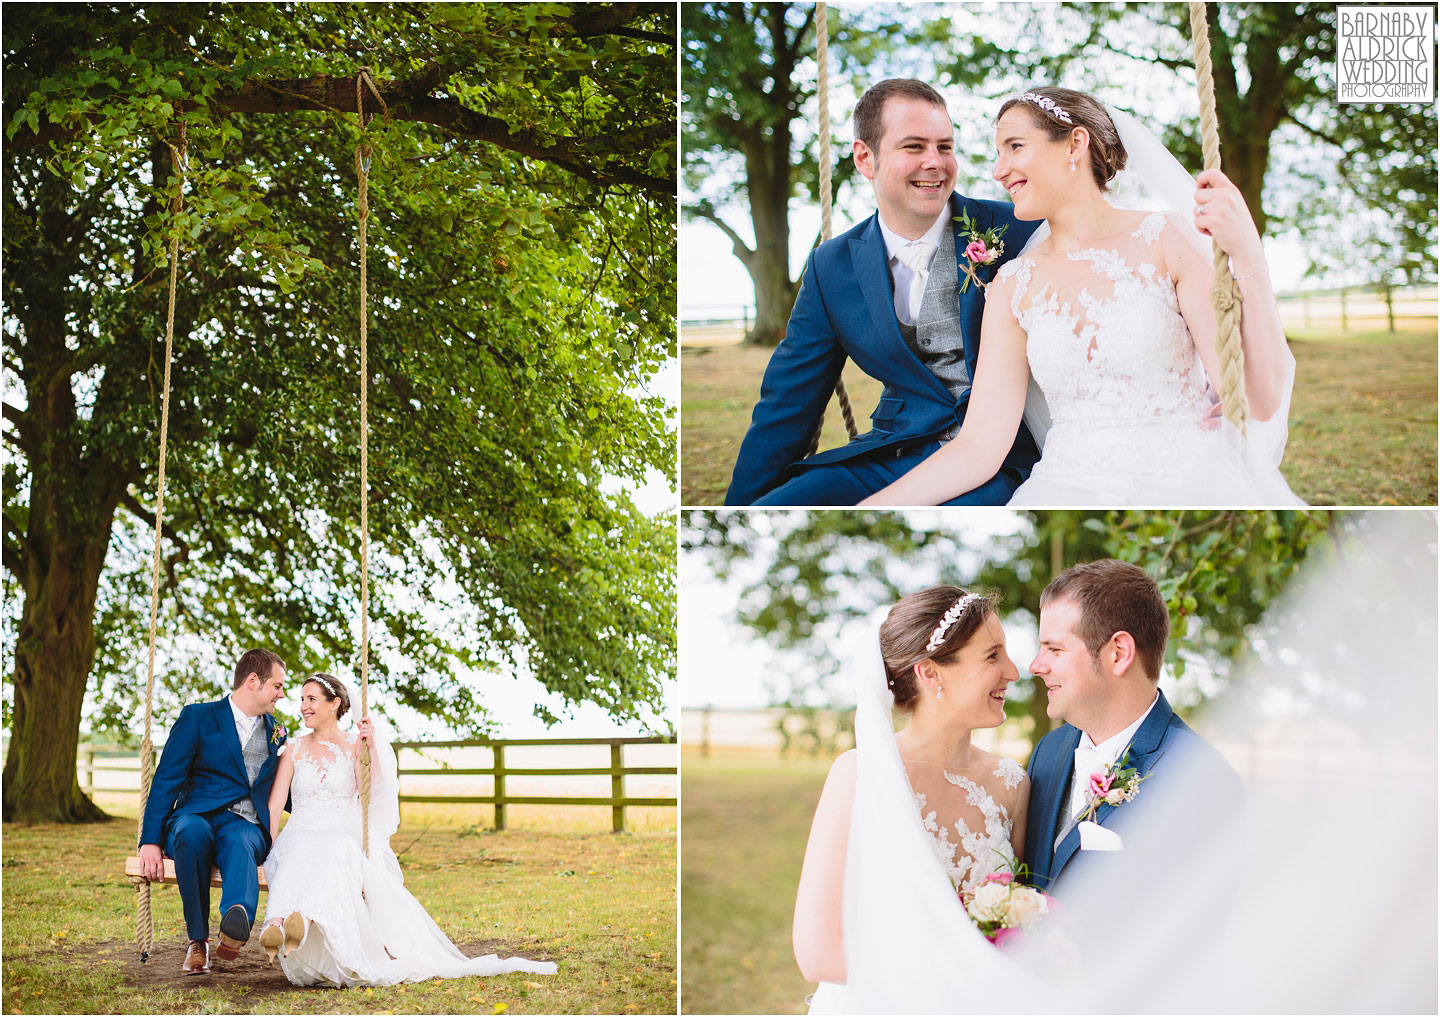 Couple portraits at Barmbyfields Barn wedding venue near York